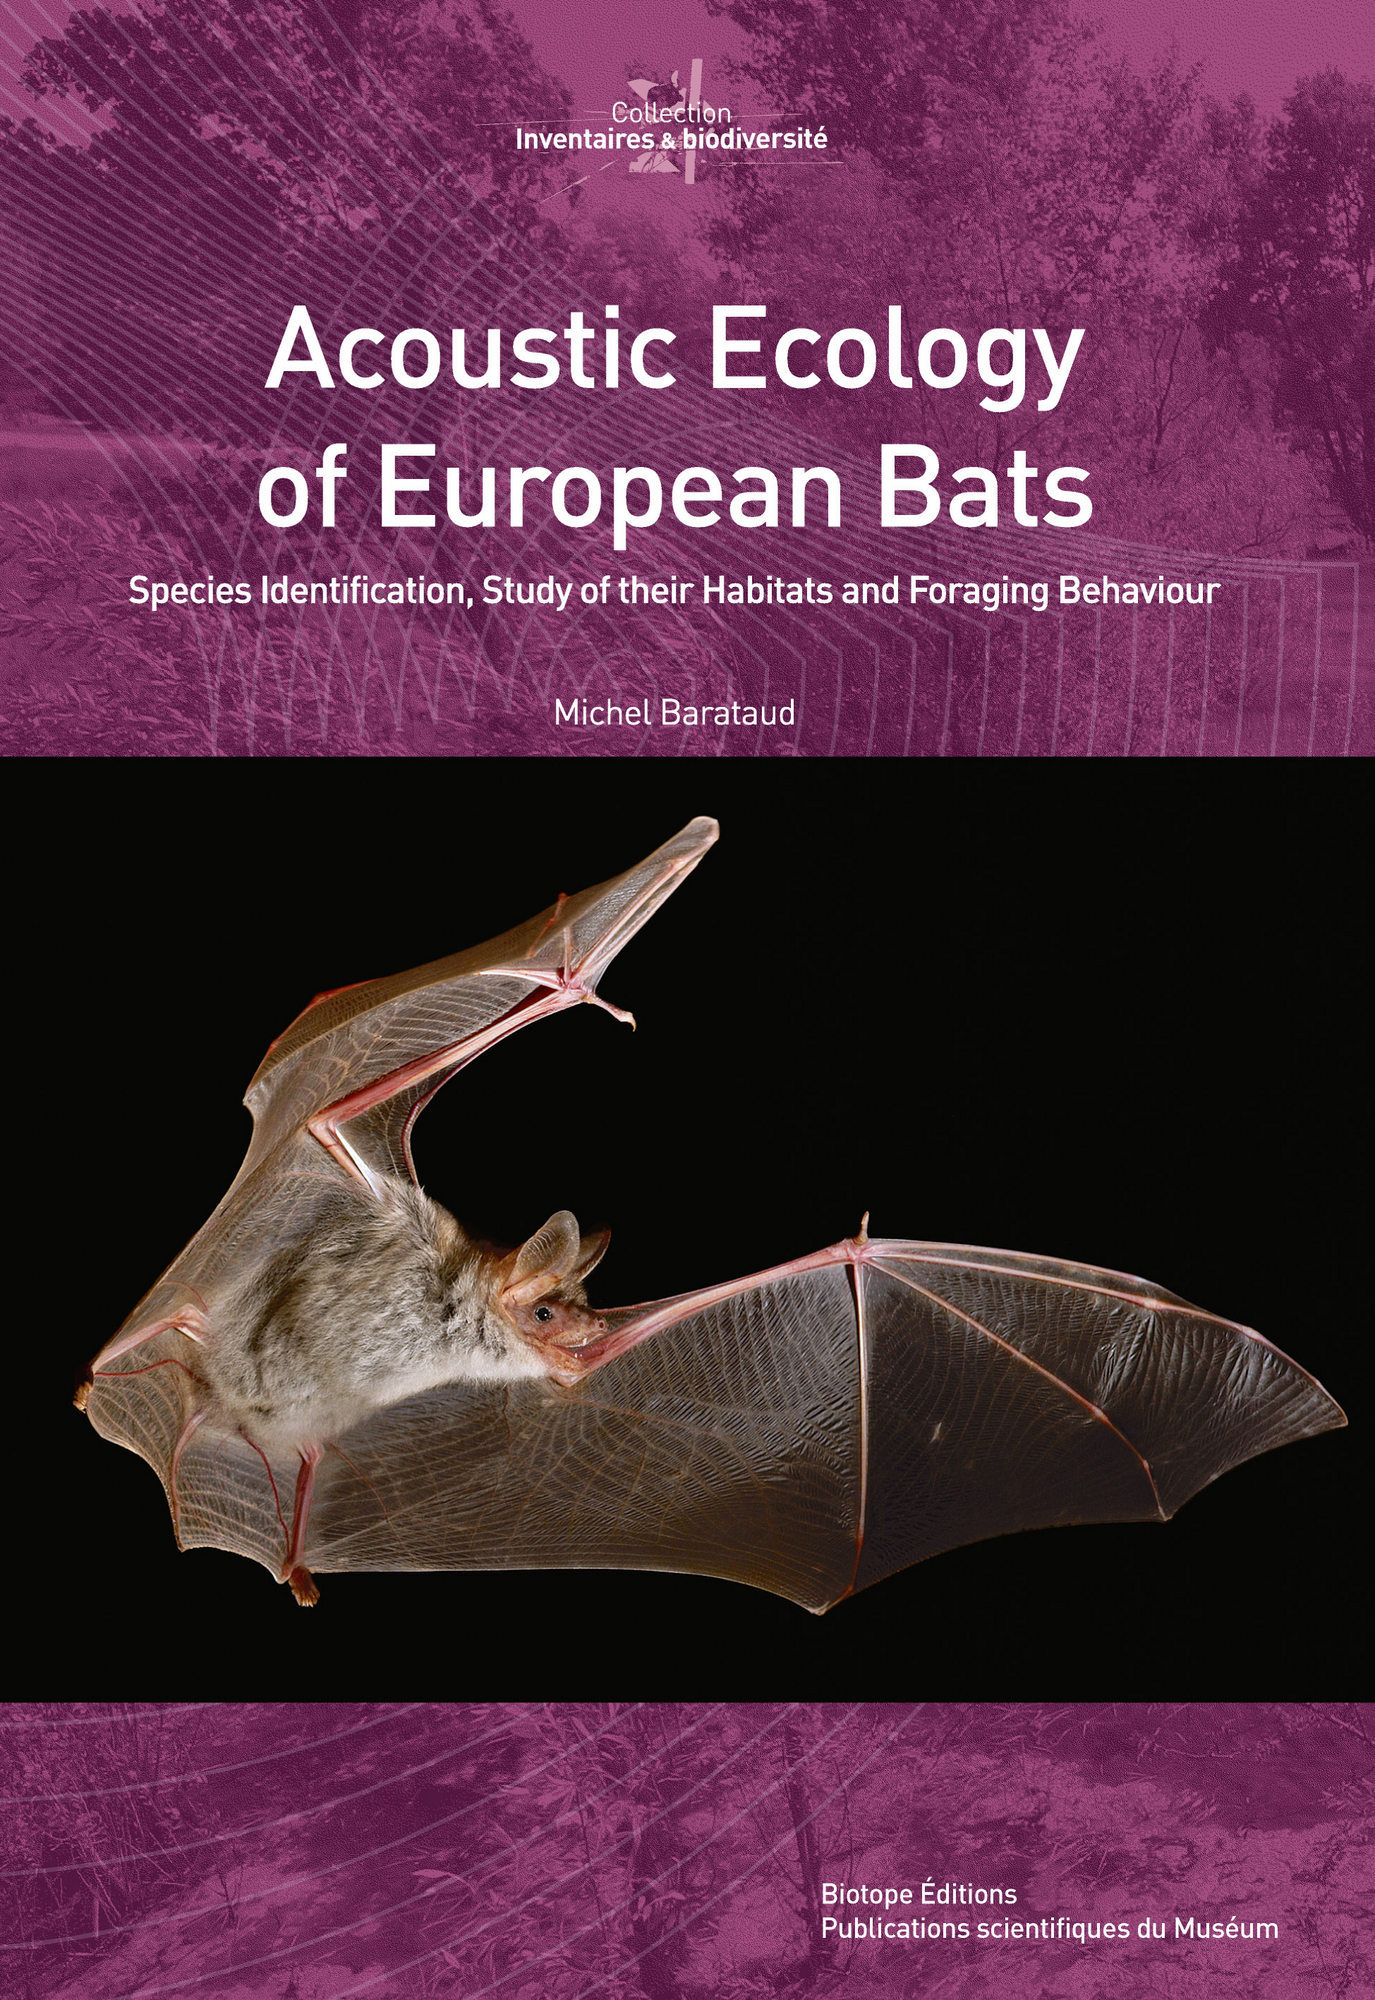 ACOUSTIC ECOLOGY OF EUROPEAN BATS - SPECIES IDENTIFICATION, STUDY OF THEIR HABIT